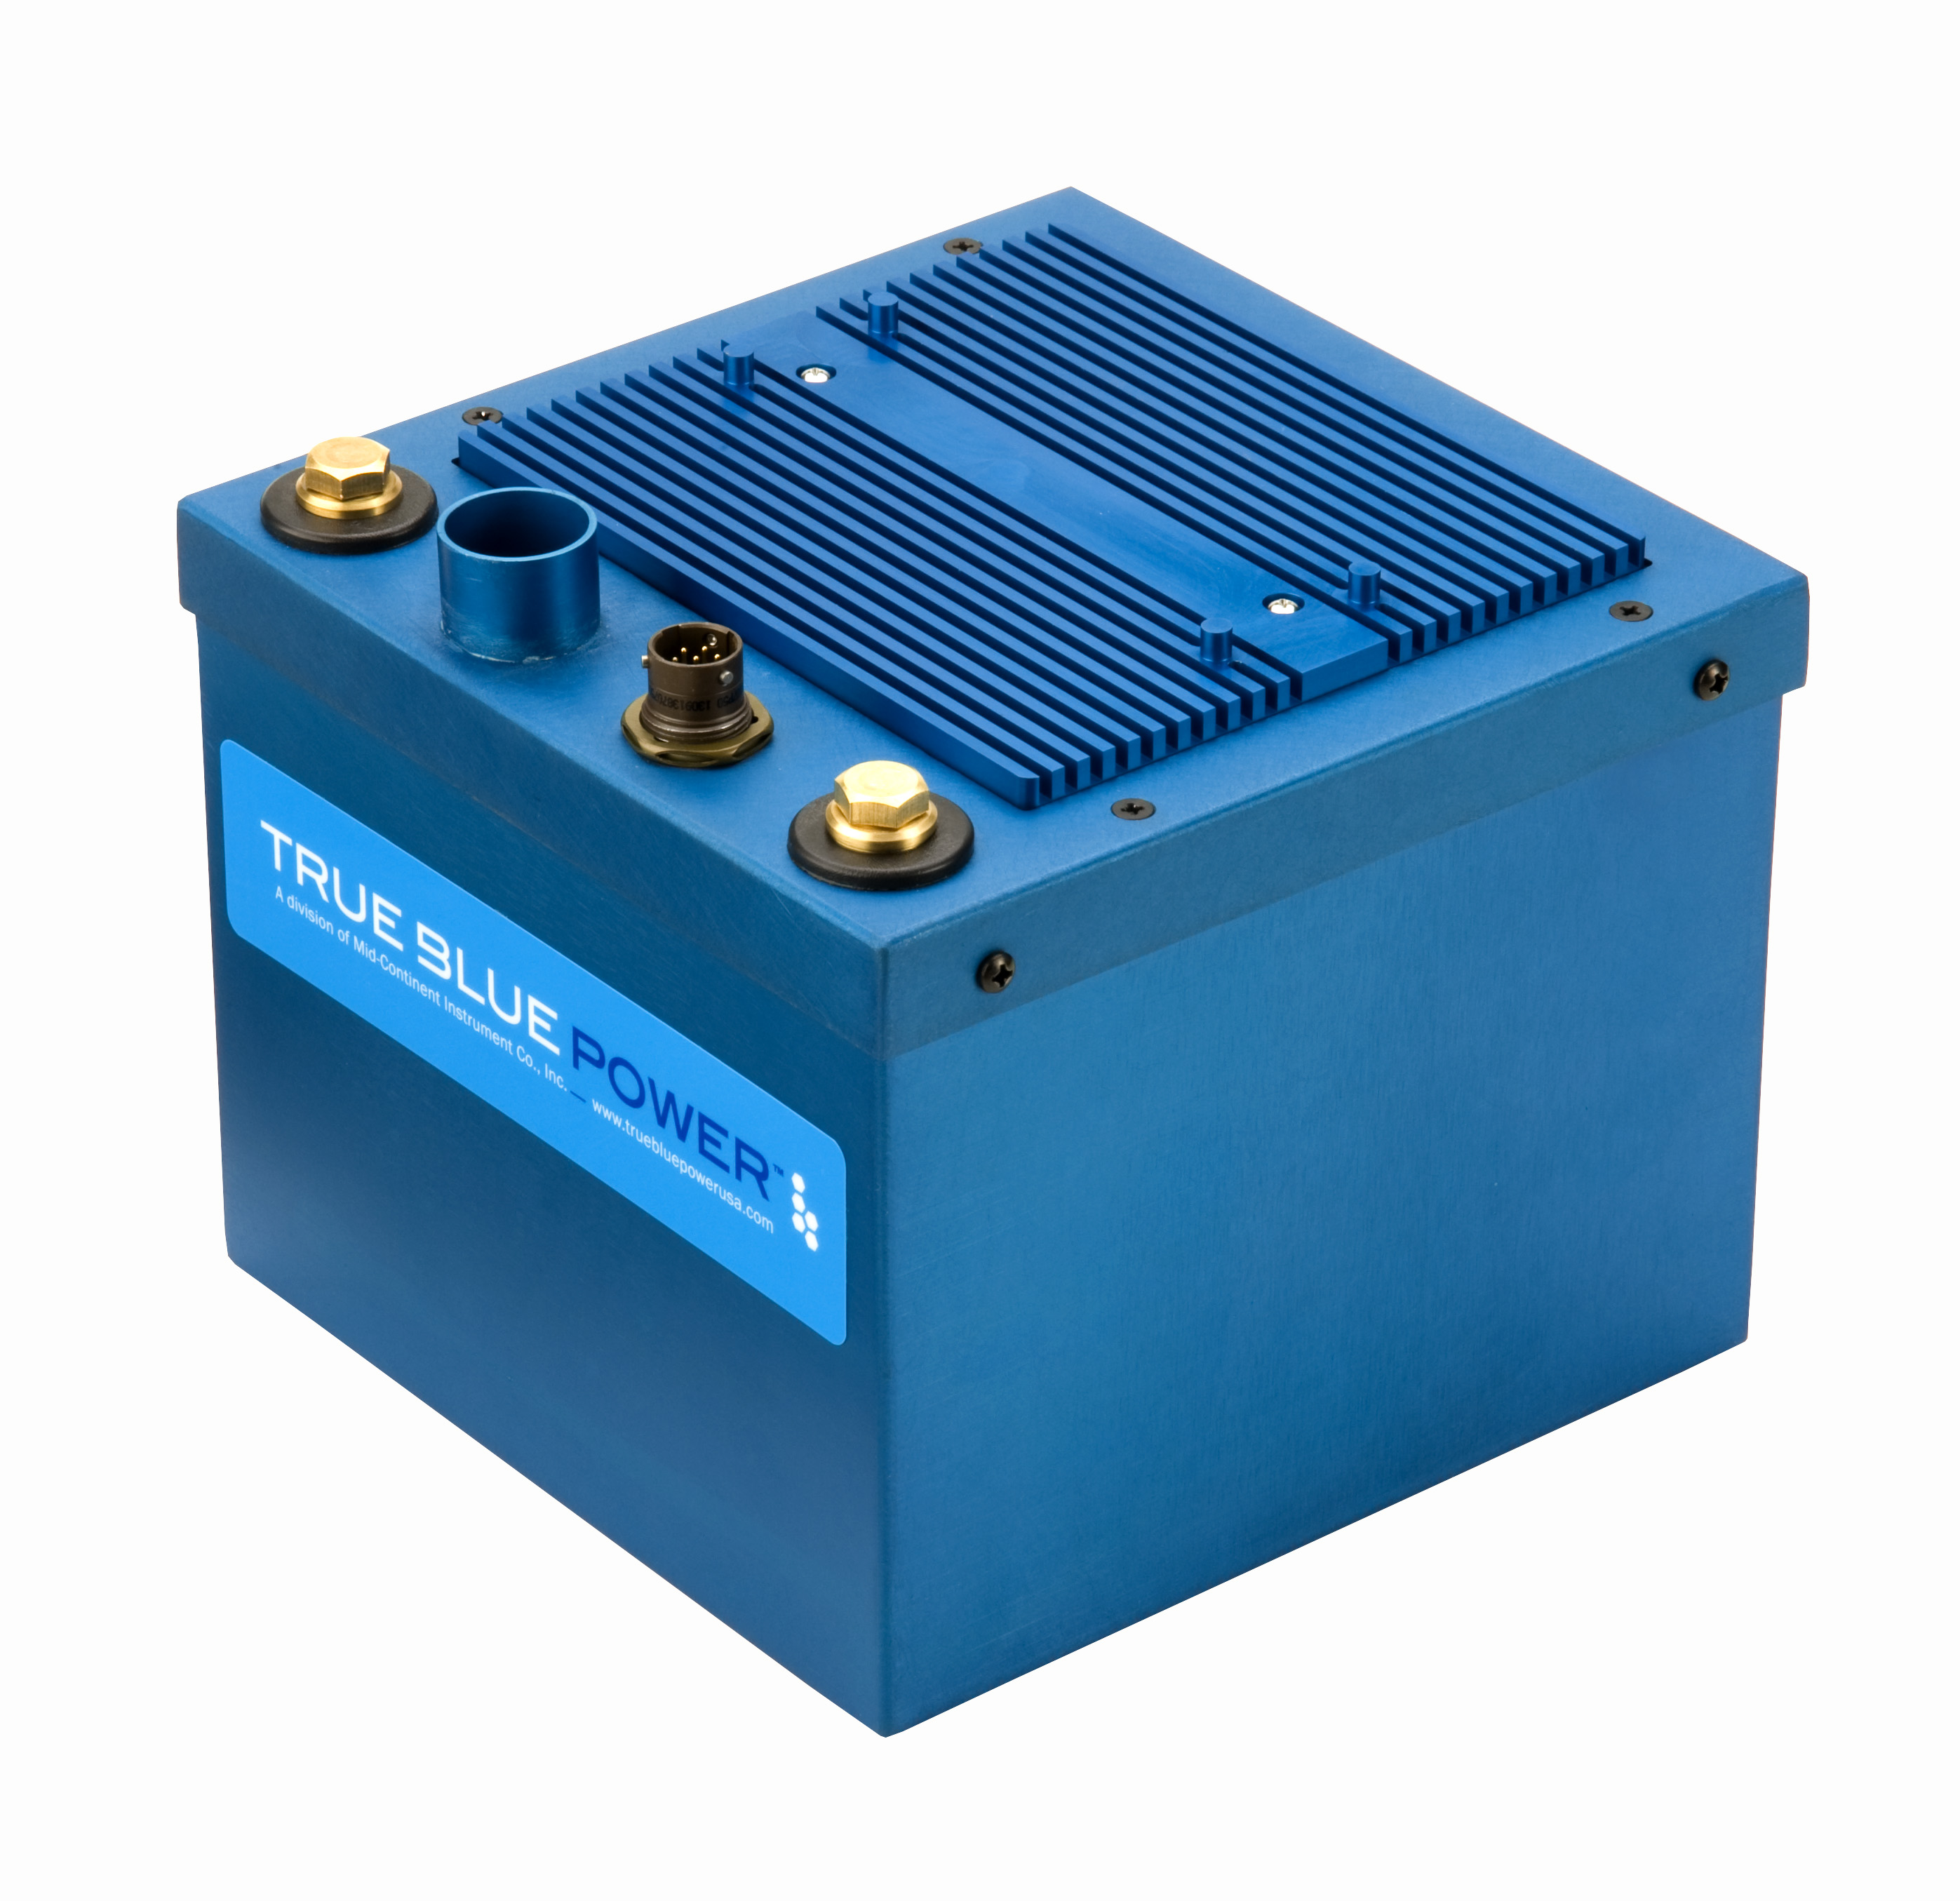 lithium ion main ship batteries are new true blue power product line